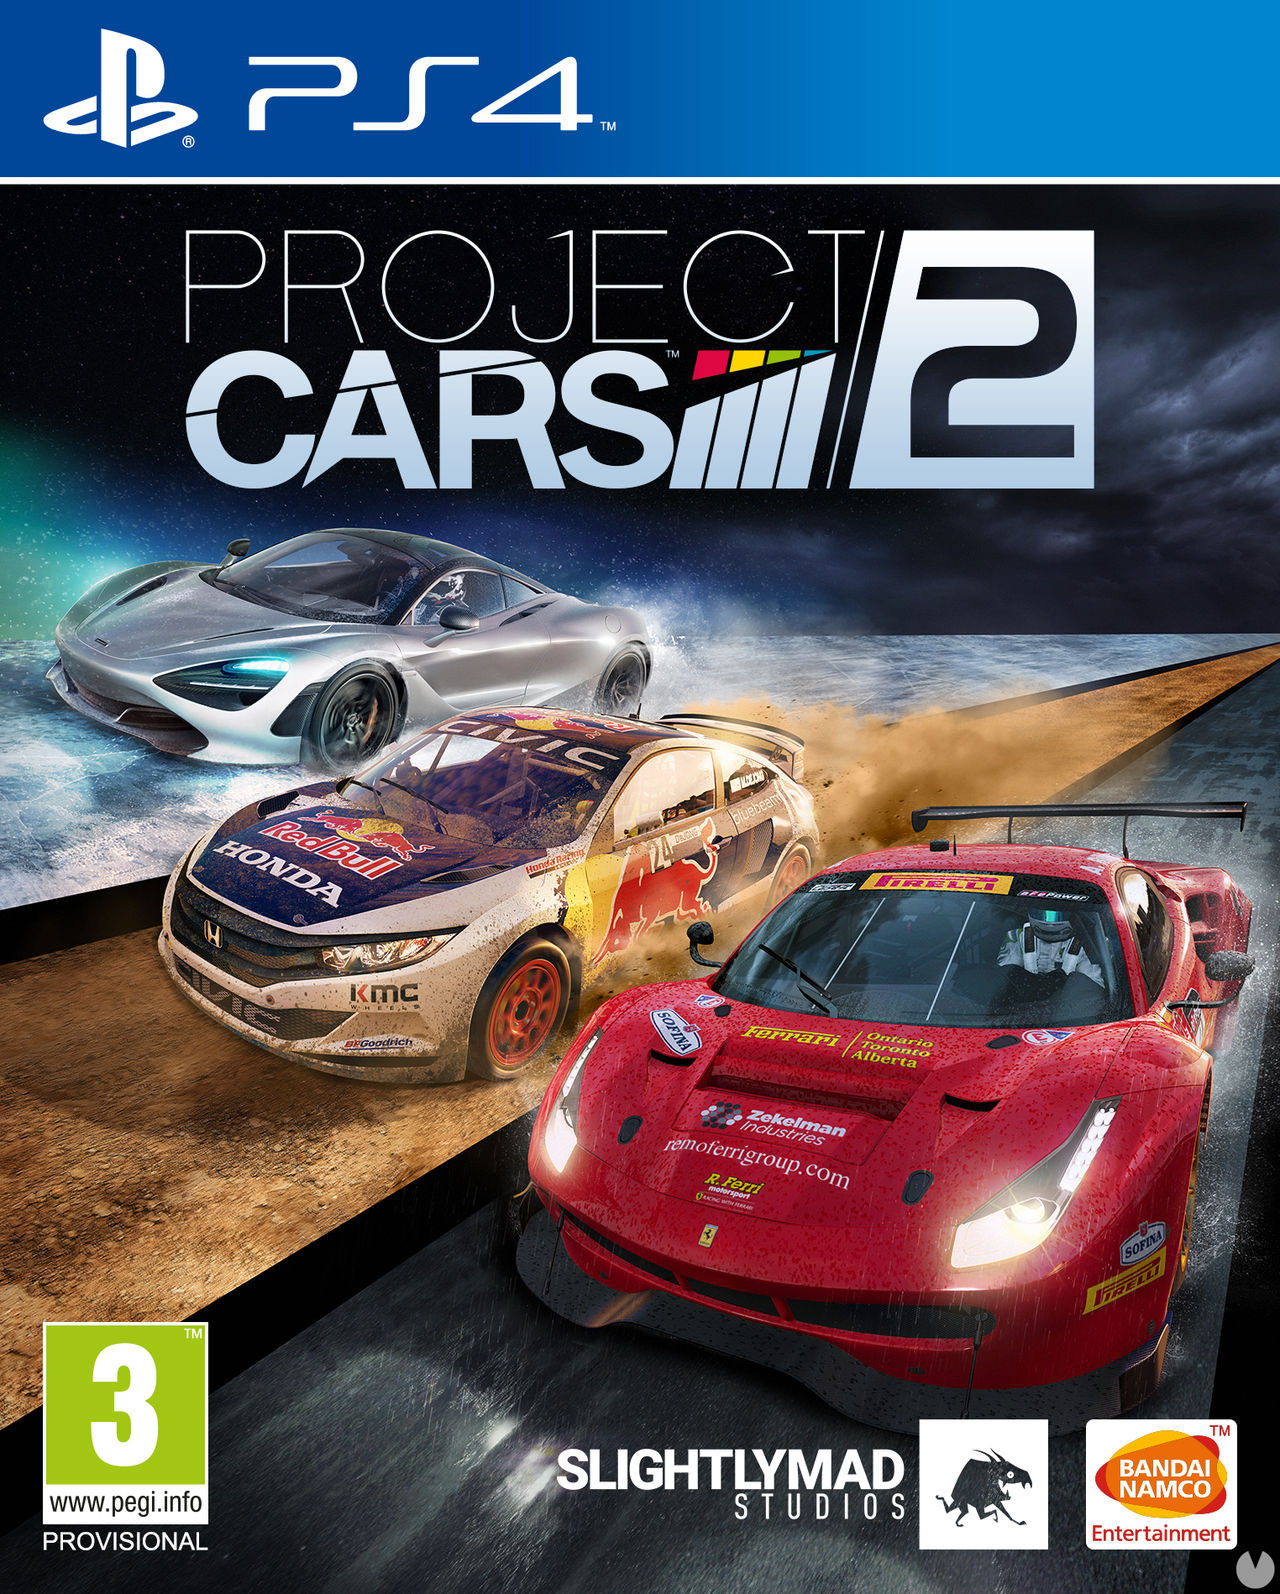 Imagen 47 de Project CARS 2 para PlayStation 4